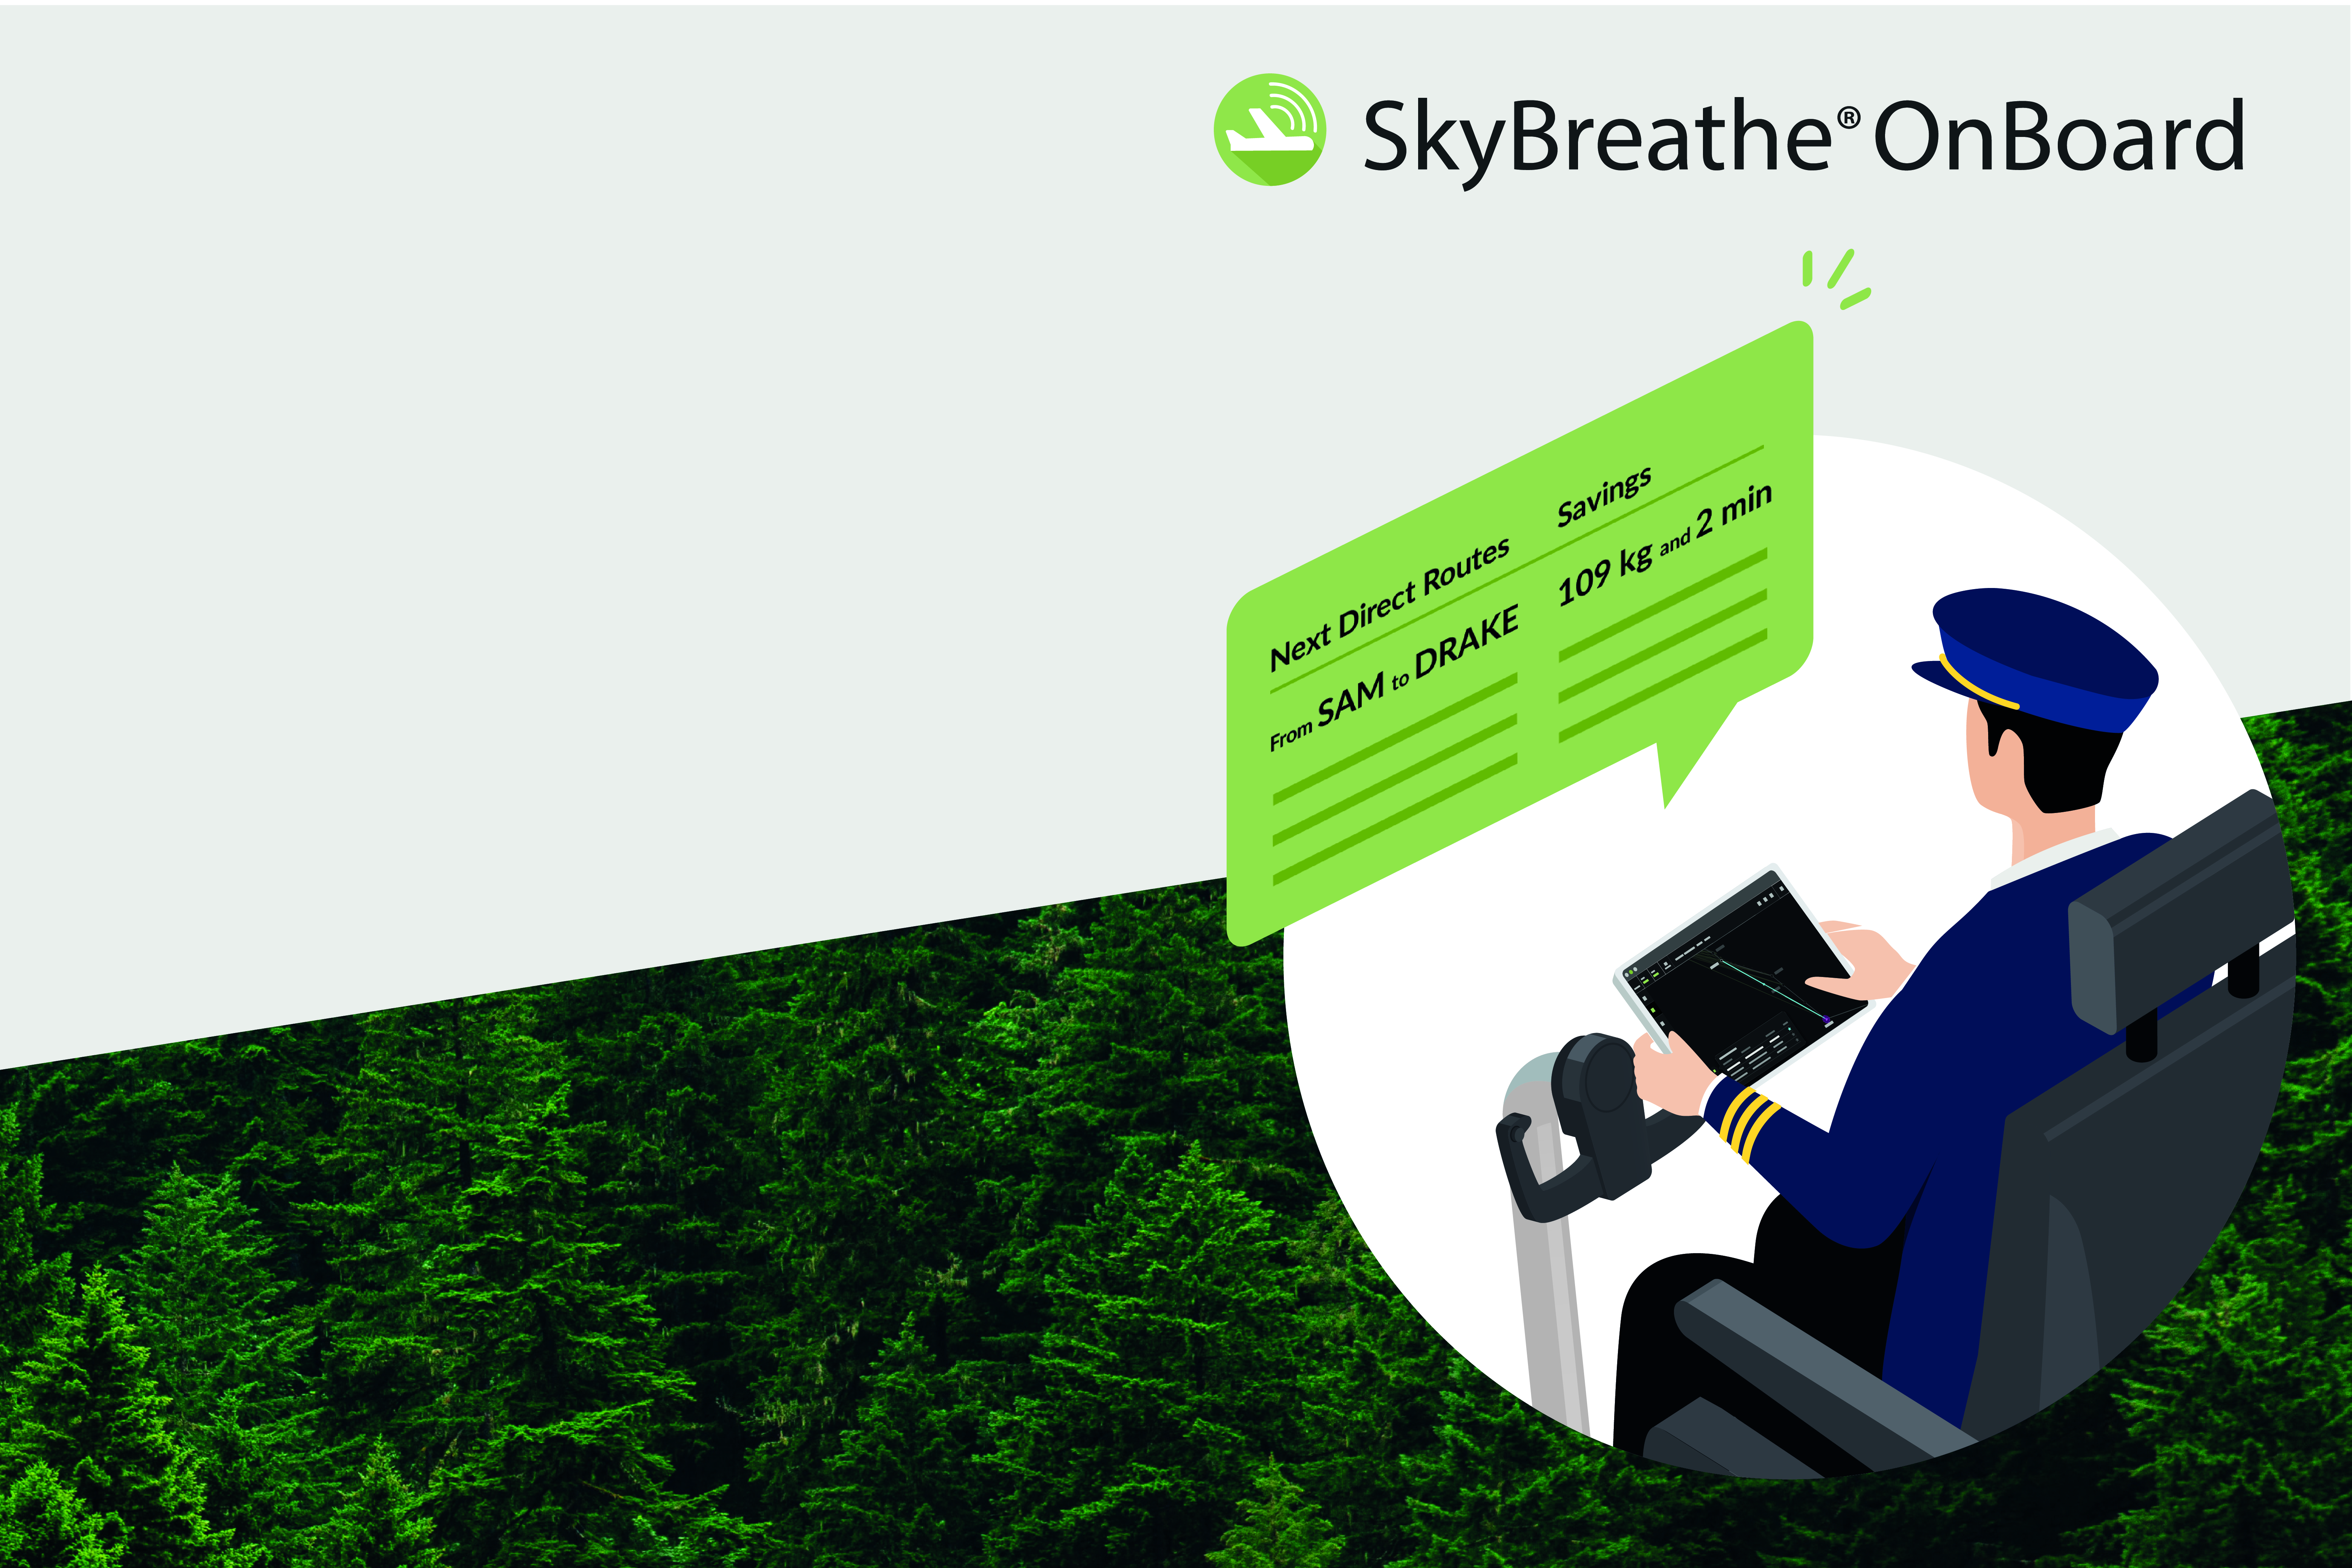 SkyBreathe OnBoard at Electronic Flight Bag Users Forum 2021